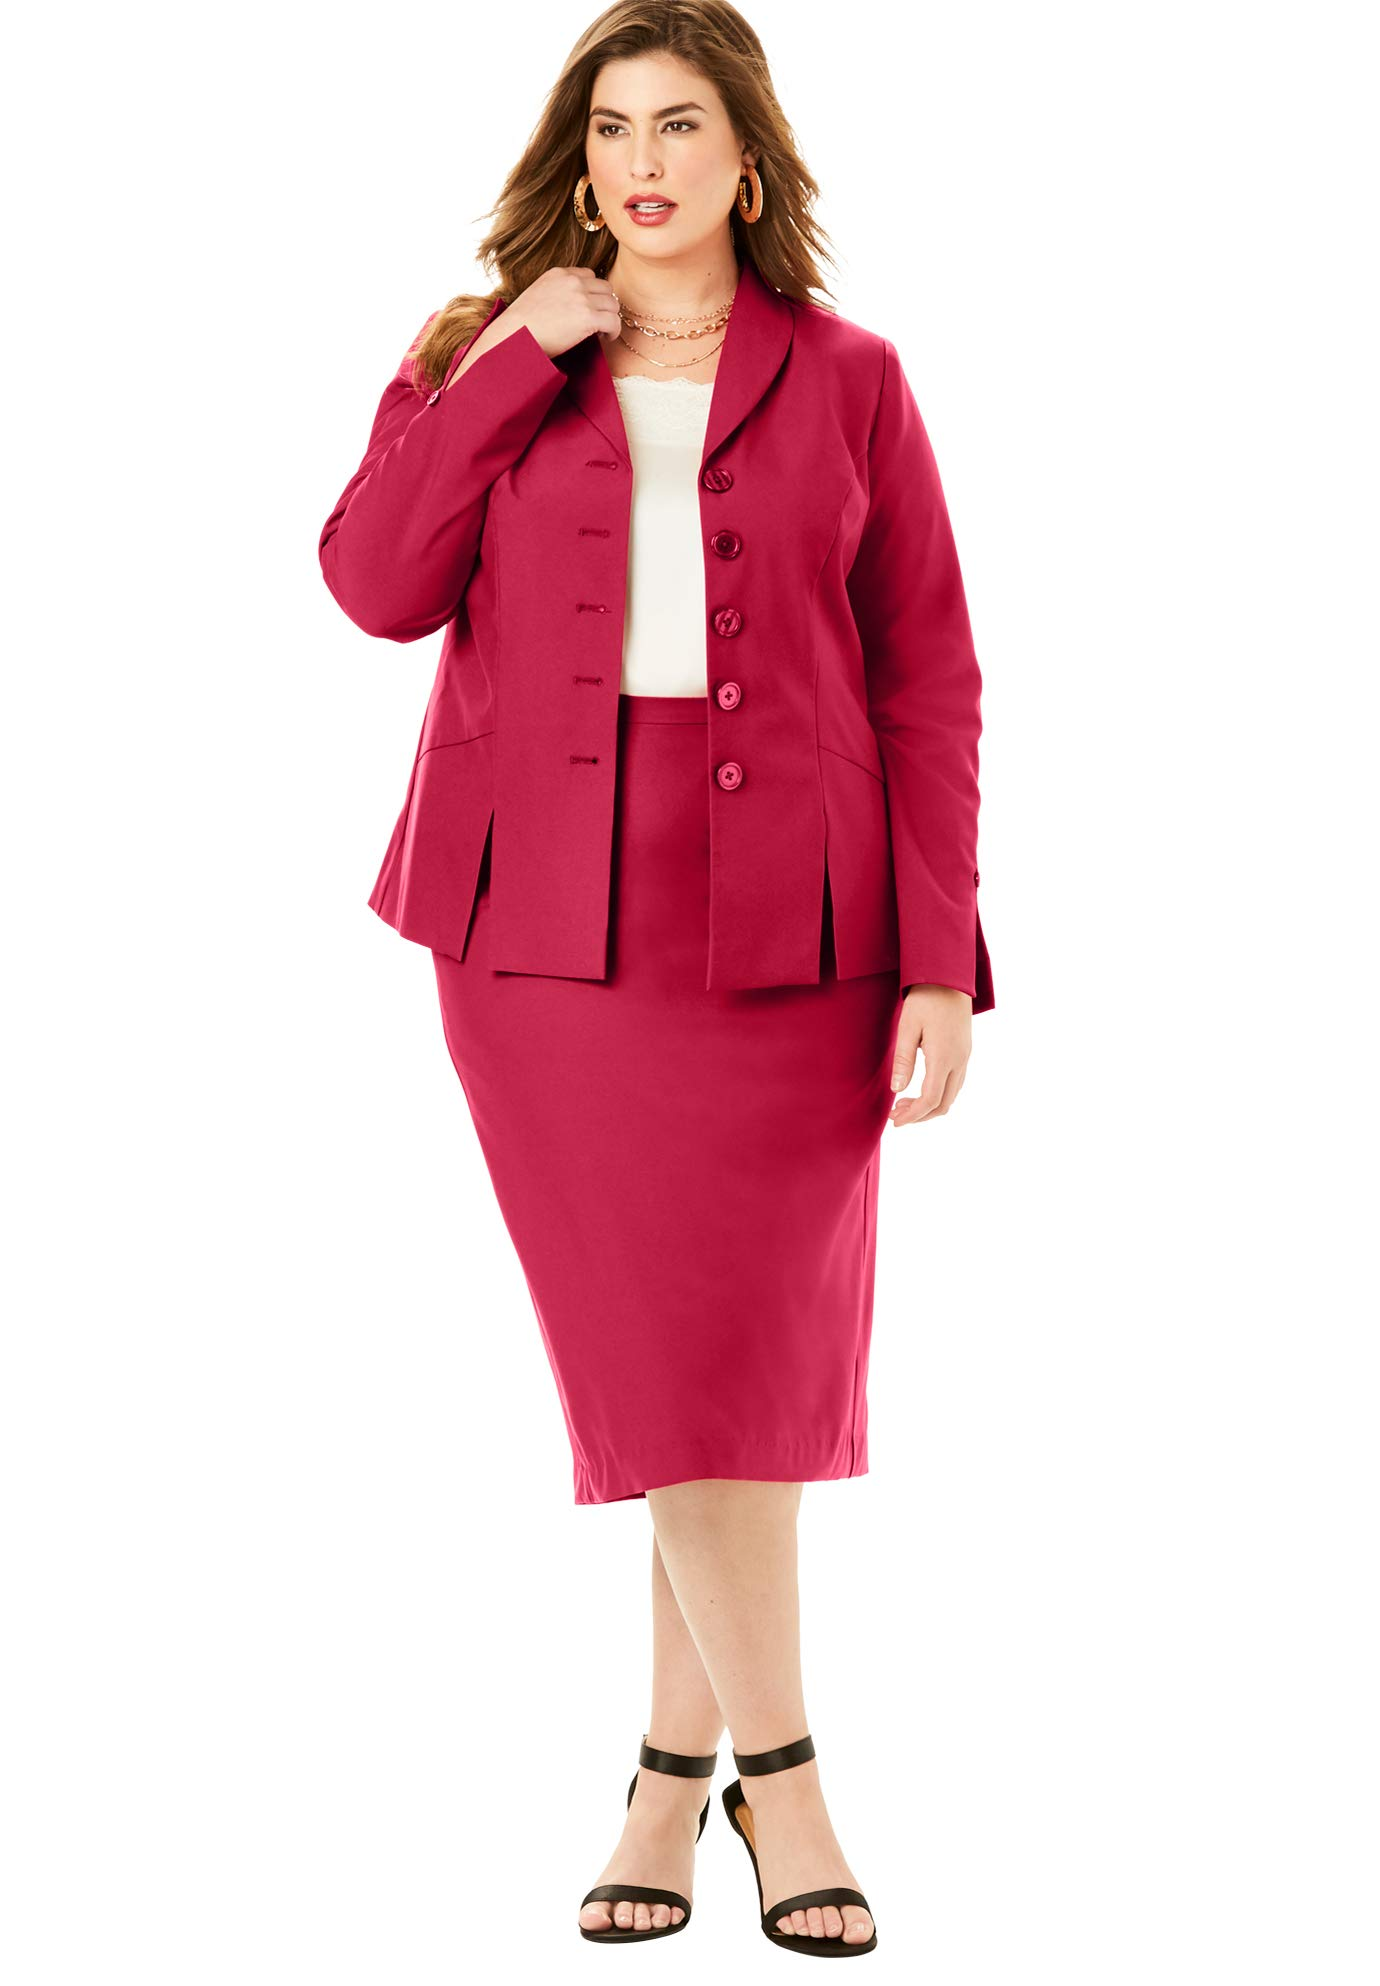 Roamans Women's Plus Size Two-Piece Skirt Suit with Shawl-Collar Jacket - Classic Red, 24 W by Roamans